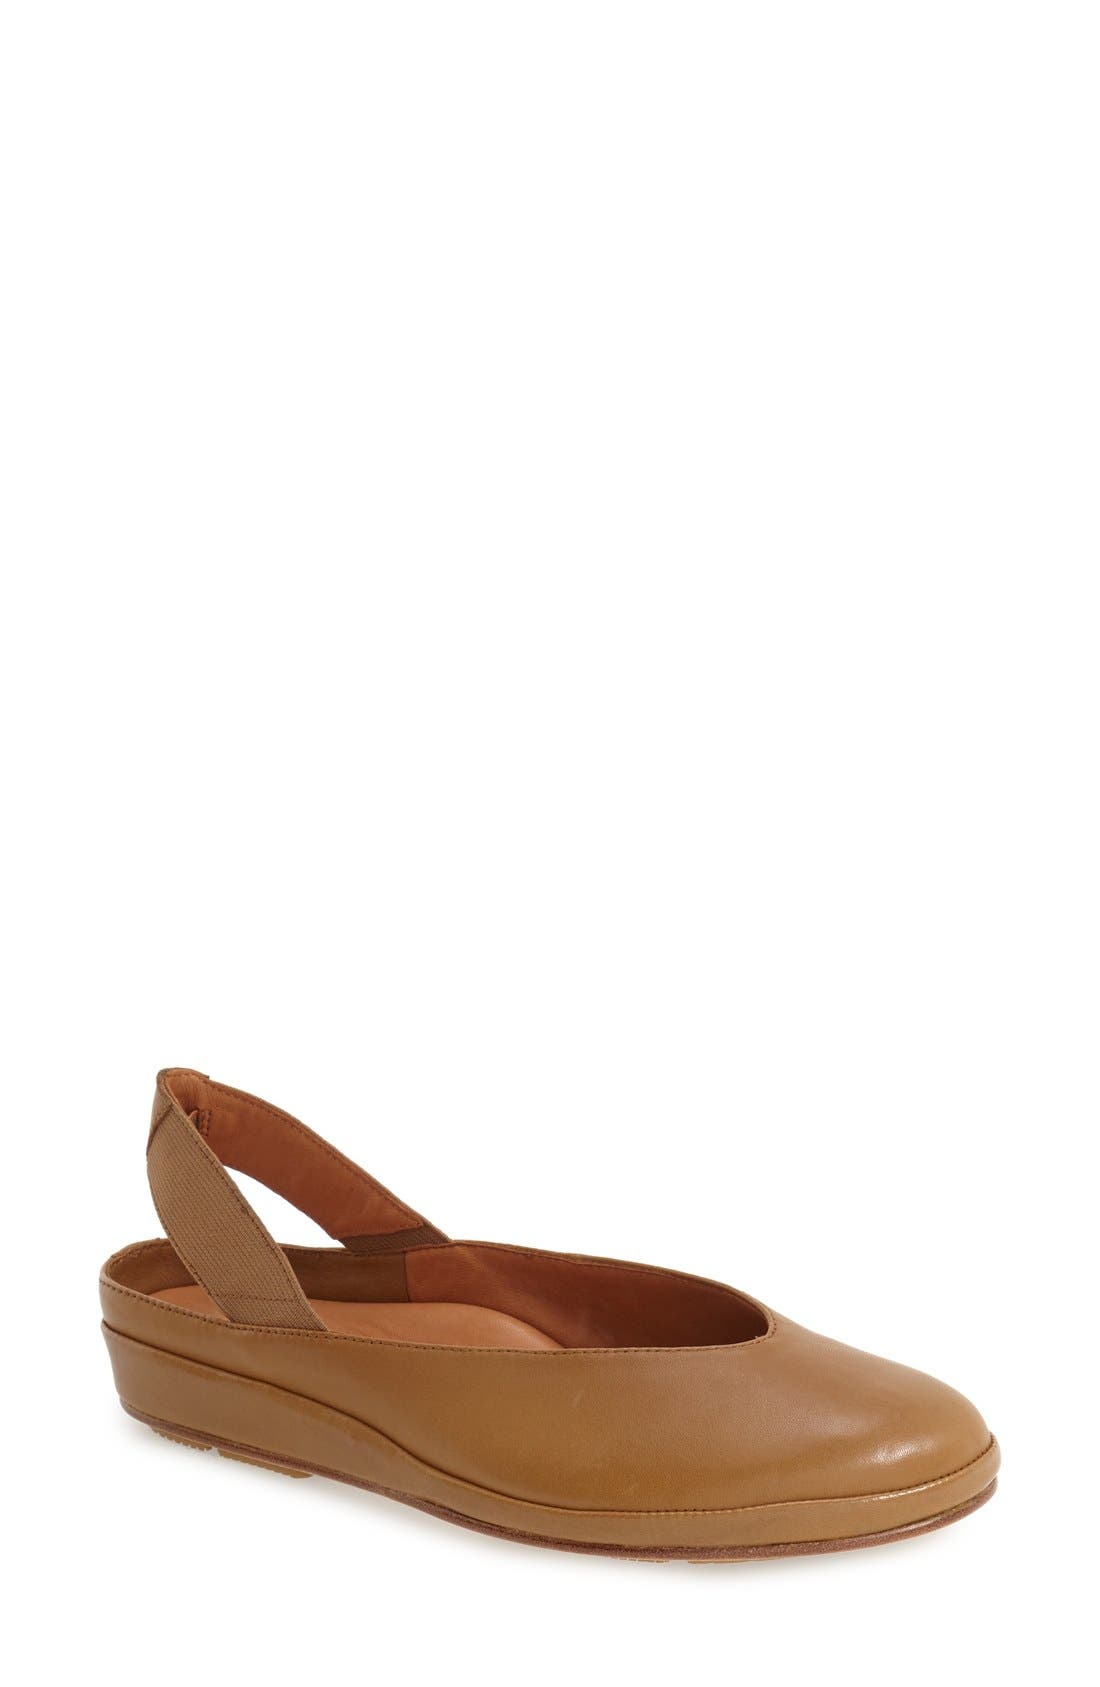 cac7b6c11d off white wedges | Nordstrom